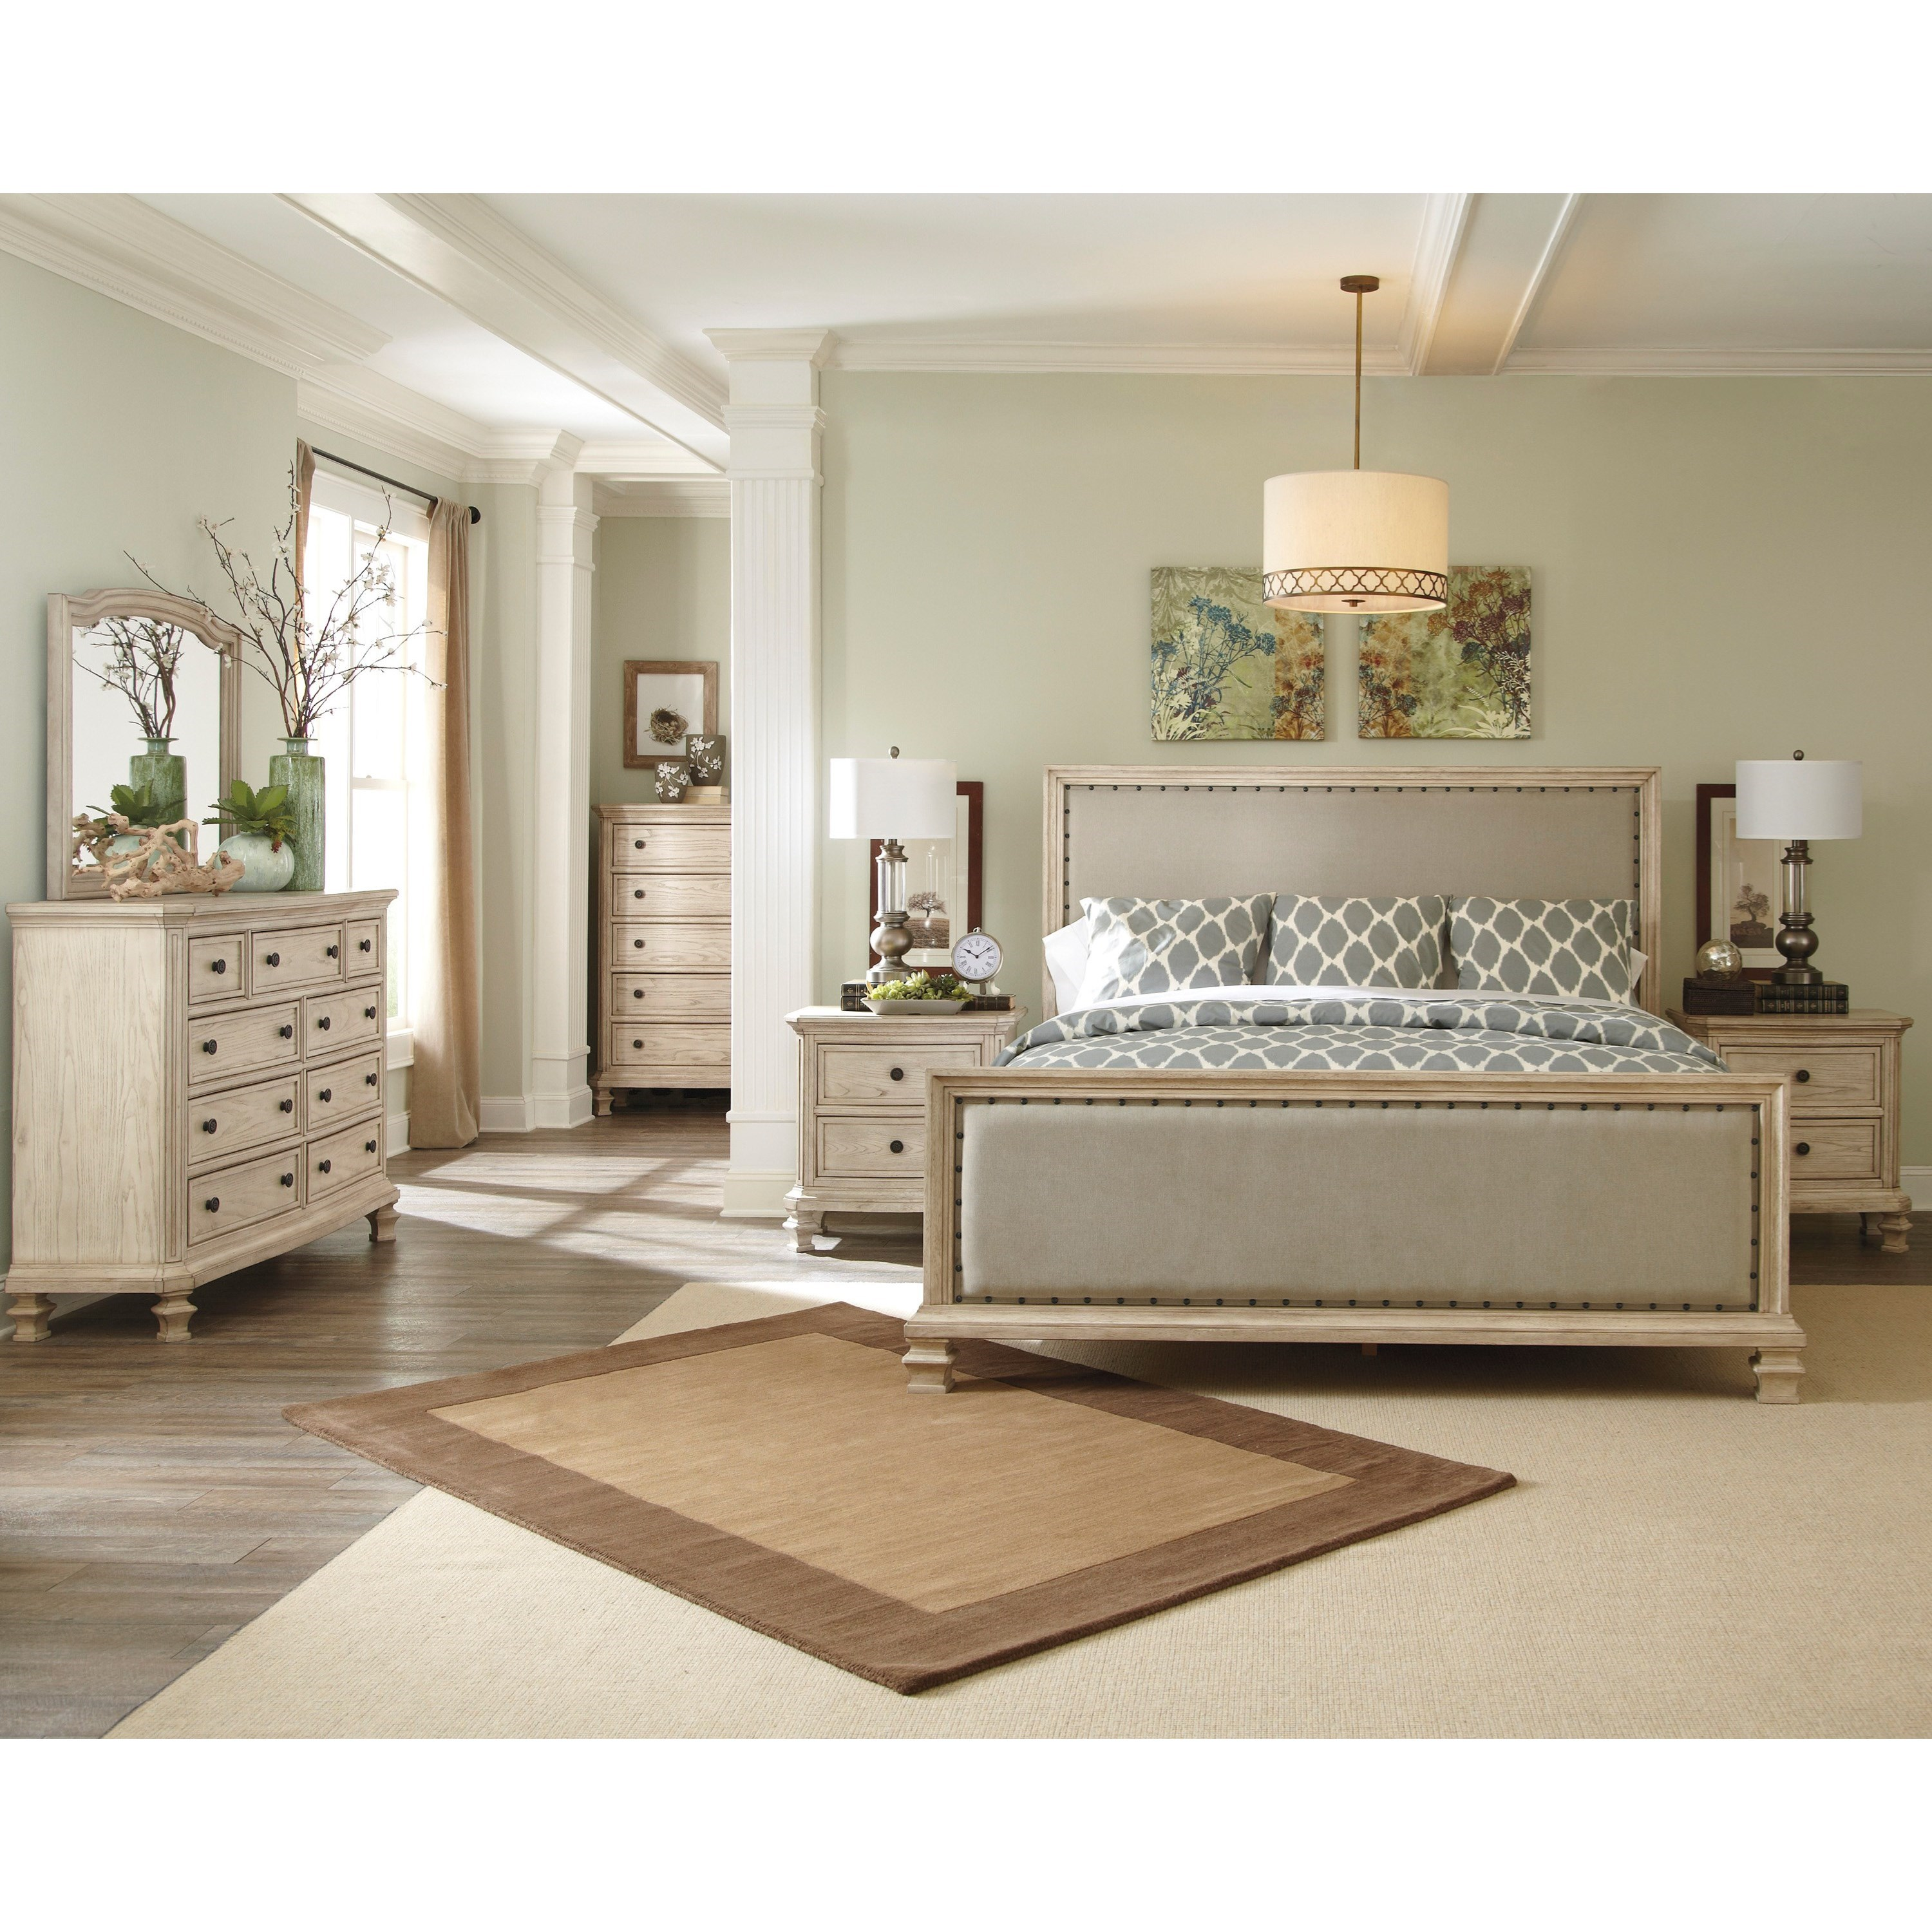 Signature design by ashley demarlos queen upholstered panel bed with upholstered footboard for Demarlos upholstered panel bedroom set